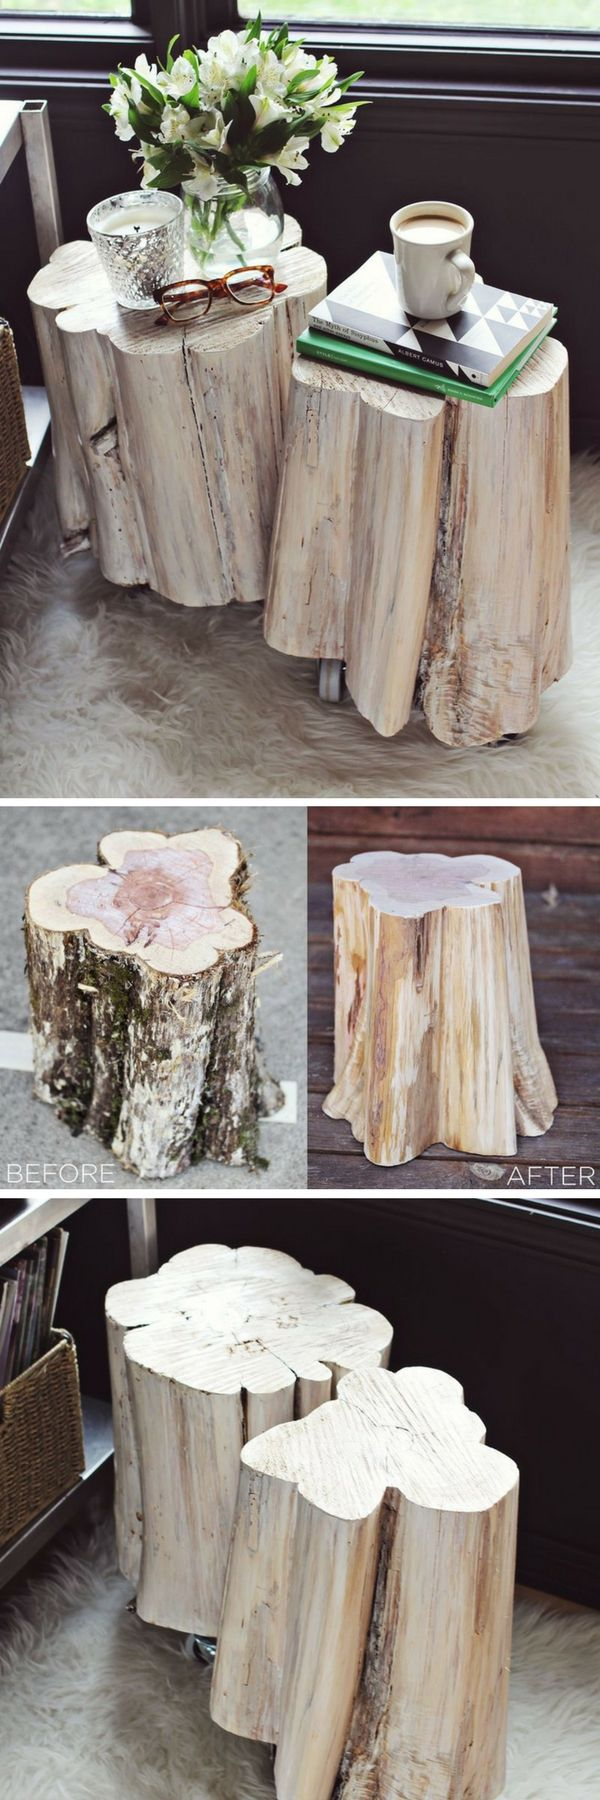 Diy tree stump table - 16 Inspiring Diy Tree Stump Projects That You Can Make Too